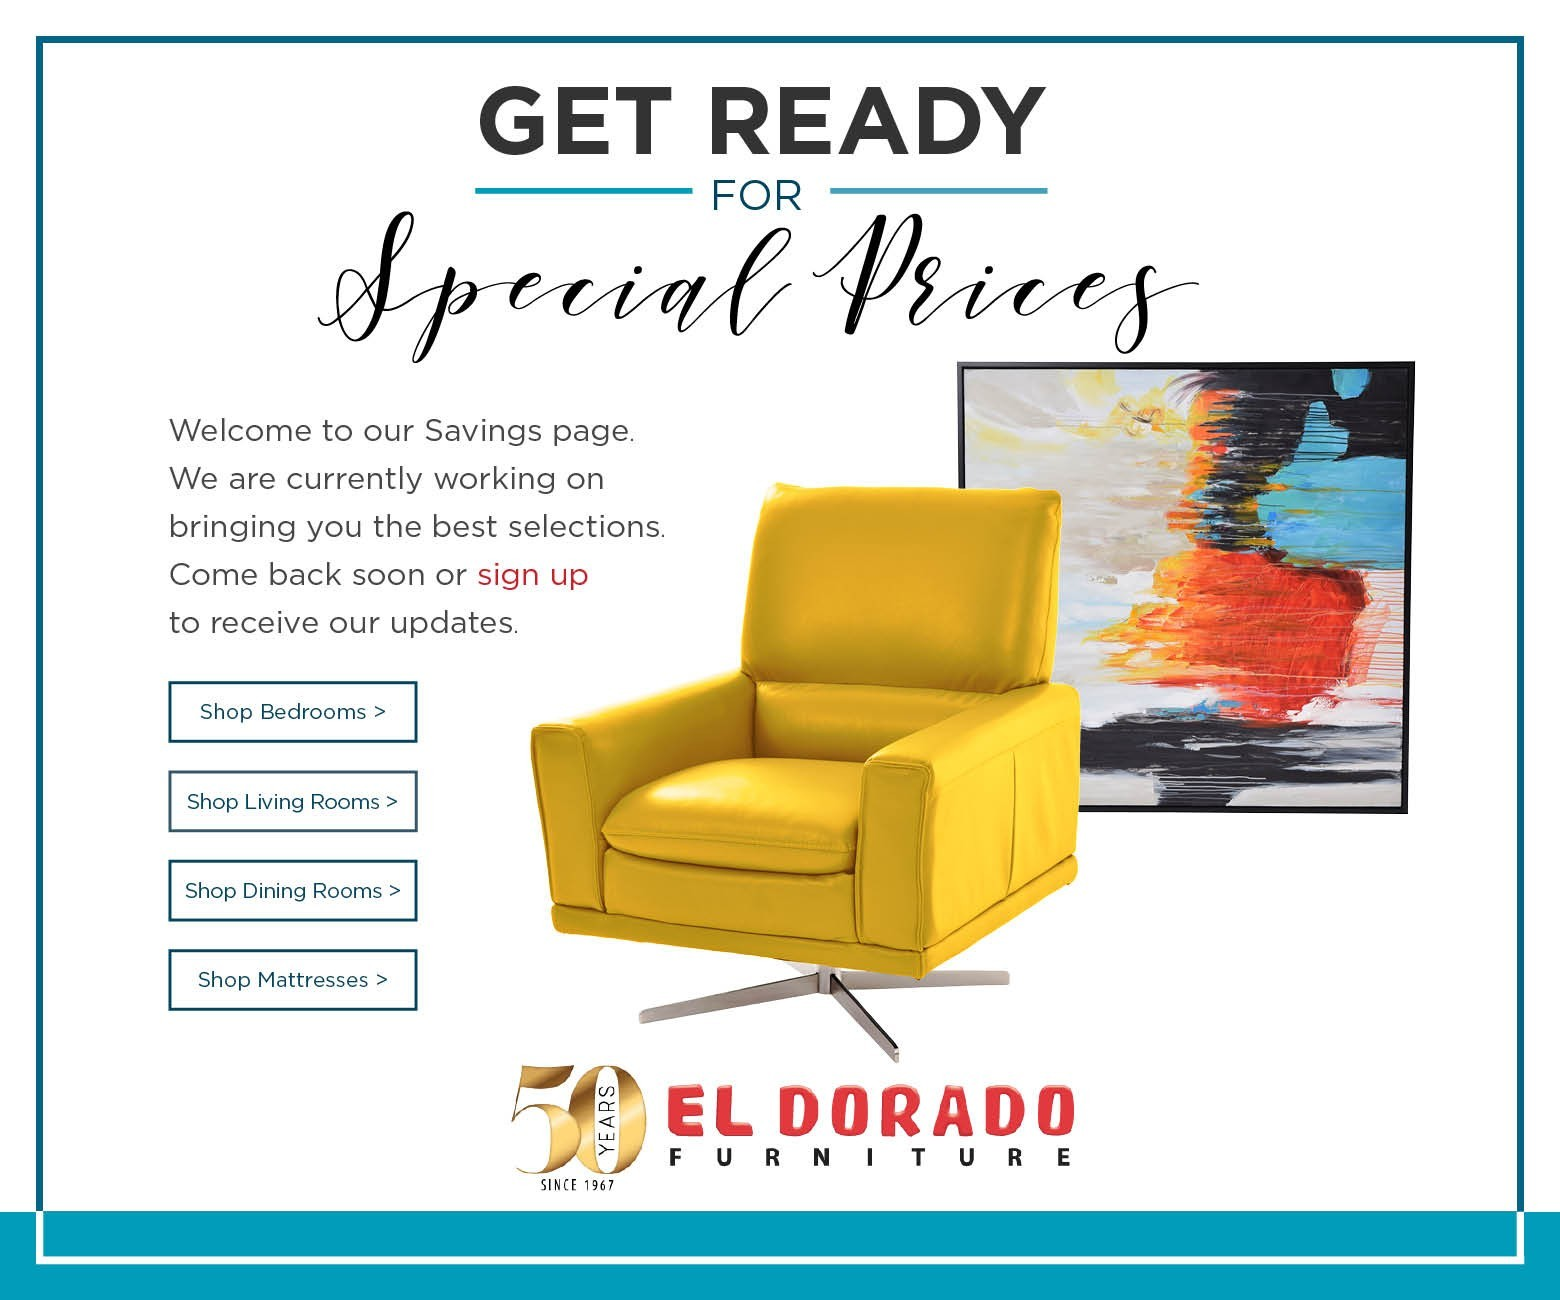 Get Ready for Special Prices. Welcome to our Savings page. We are currently working on bringing you the best selections. Come back soon or sign up to receive our updates. Shop Bedrooms. Shop Living Rooms. Shop Dining Rooms. Shop Mattresses. El Dorado Furniture.